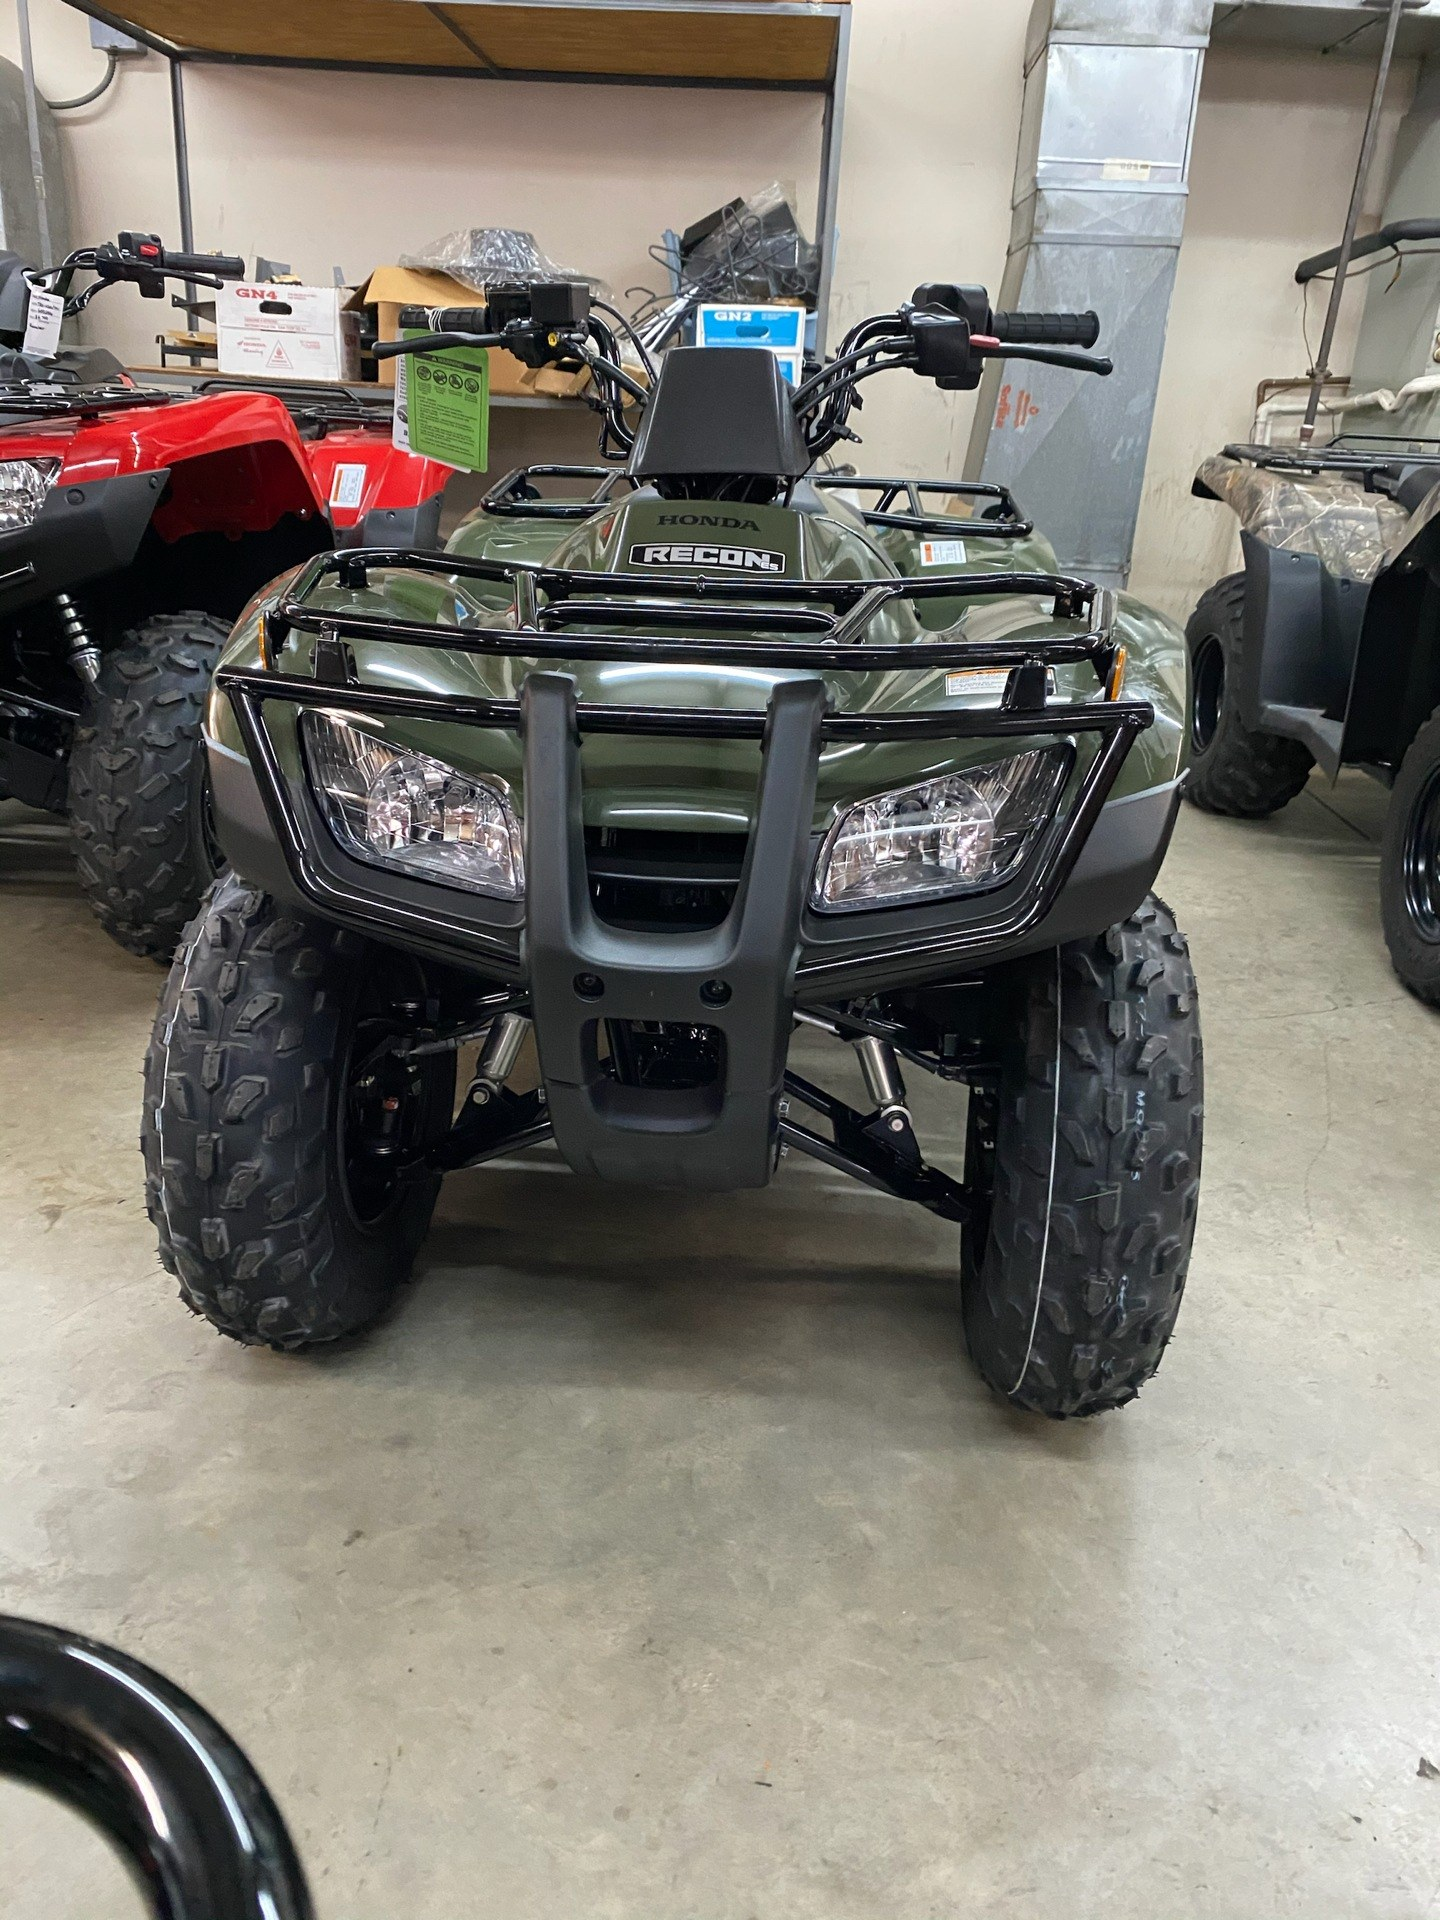 2020 Honda FourTrax Recon ES in Statesville, North Carolina - Photo 1